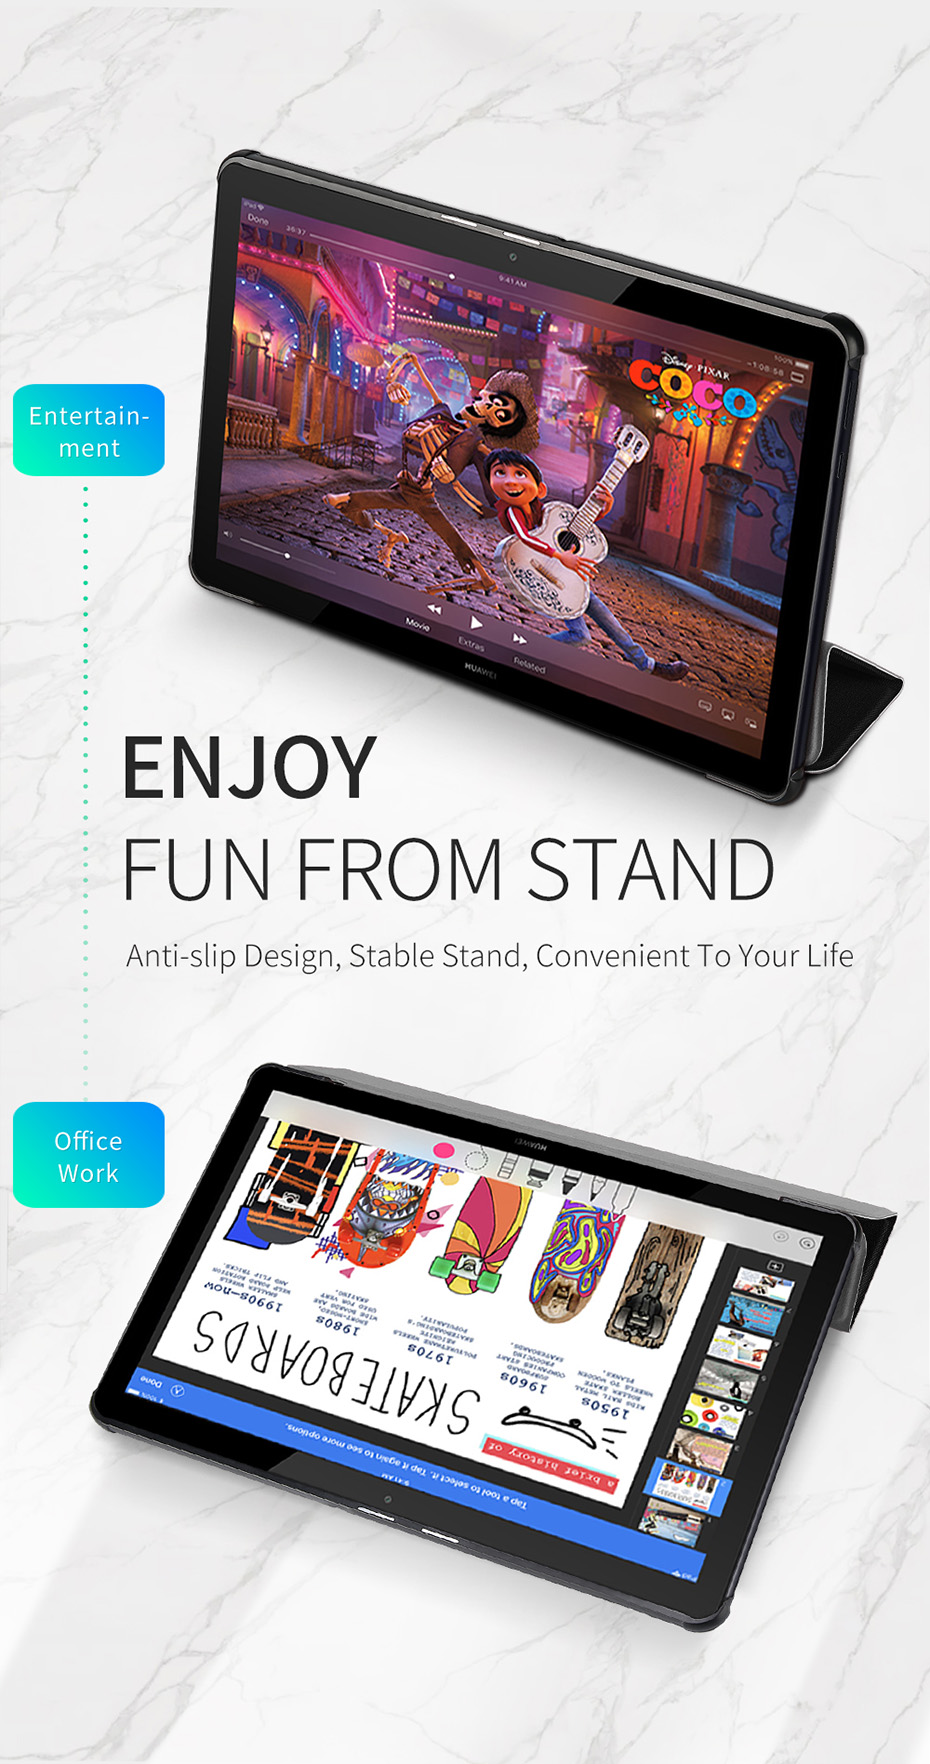 Leather Case For Huawei Mediapad T5 Luxury Stand Smart Folio Cover For Huawei Mediapad T5 T 5 10.1